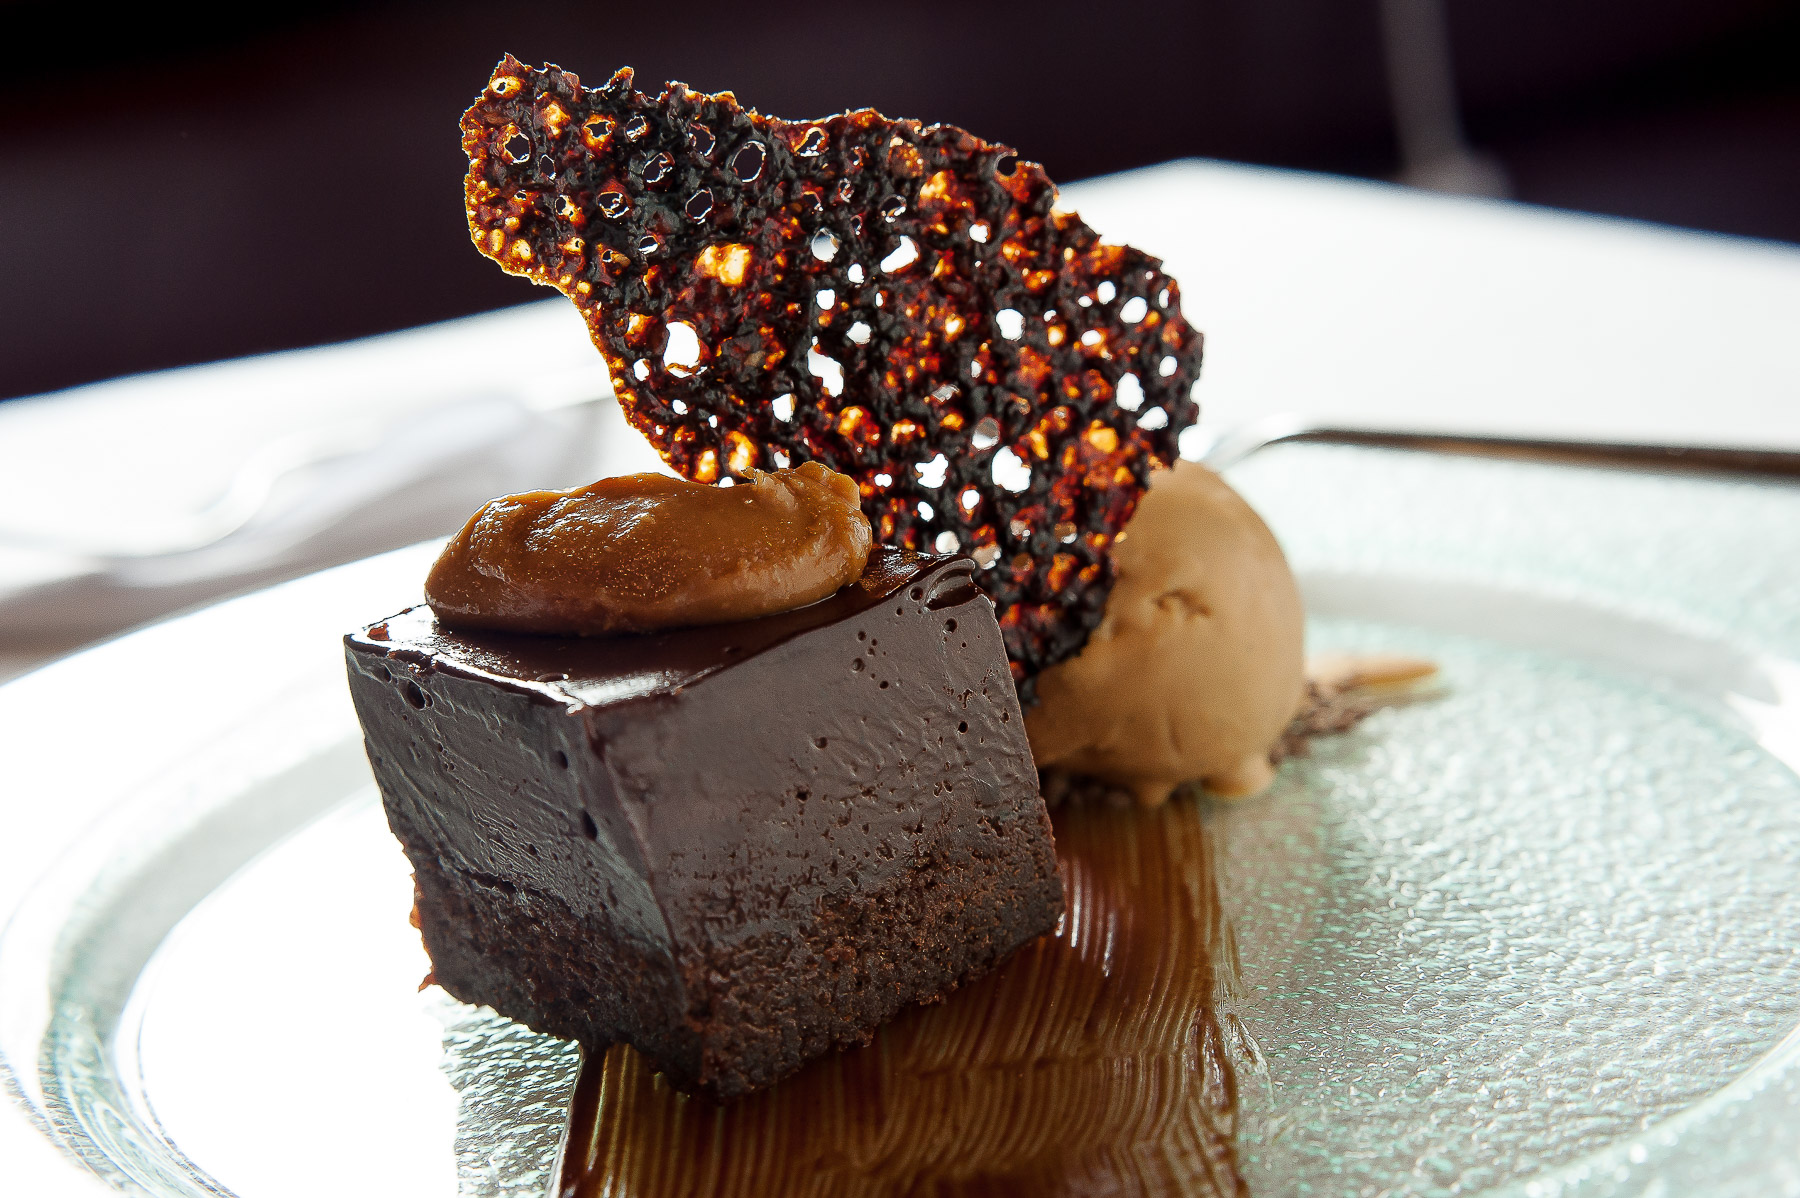 Double chocolate torte with caramalised crisp and toffee ice cream